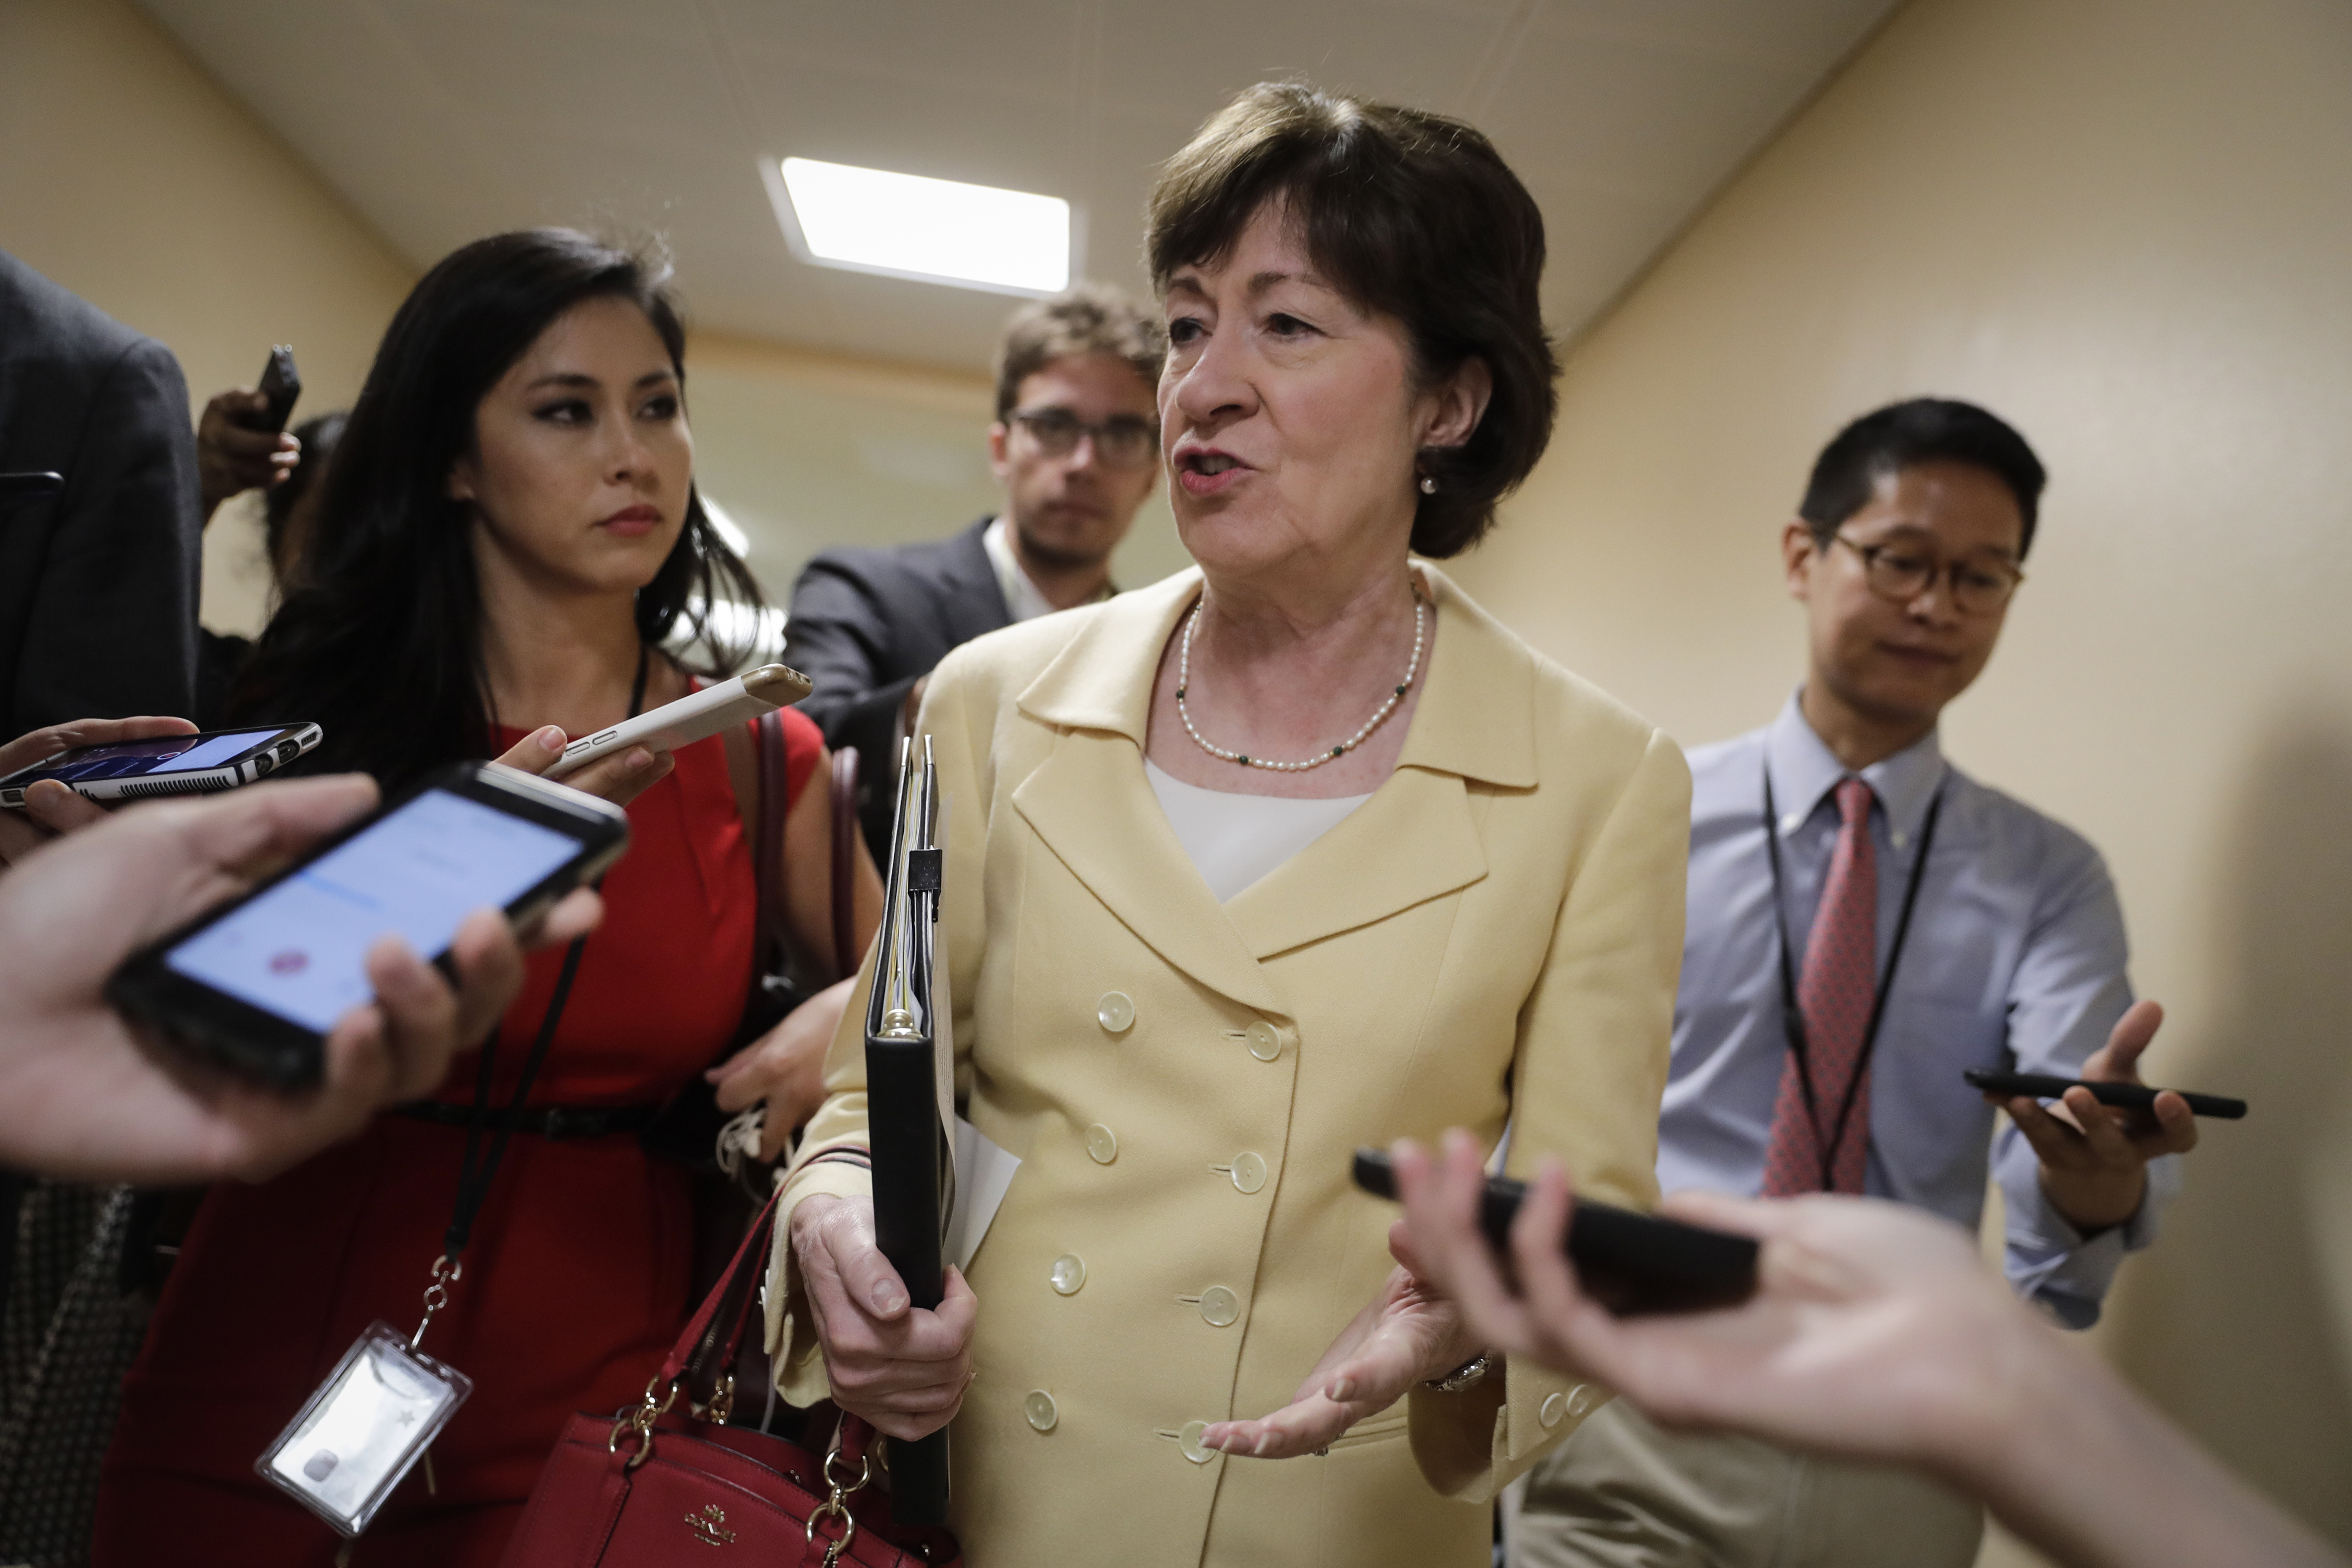 Sen. Susan Collins, R-Maine, a member of the Senate Select Committee on Intelligence, talks to reporters in a corridor at the Capitol in Washington, June 21, 2017.